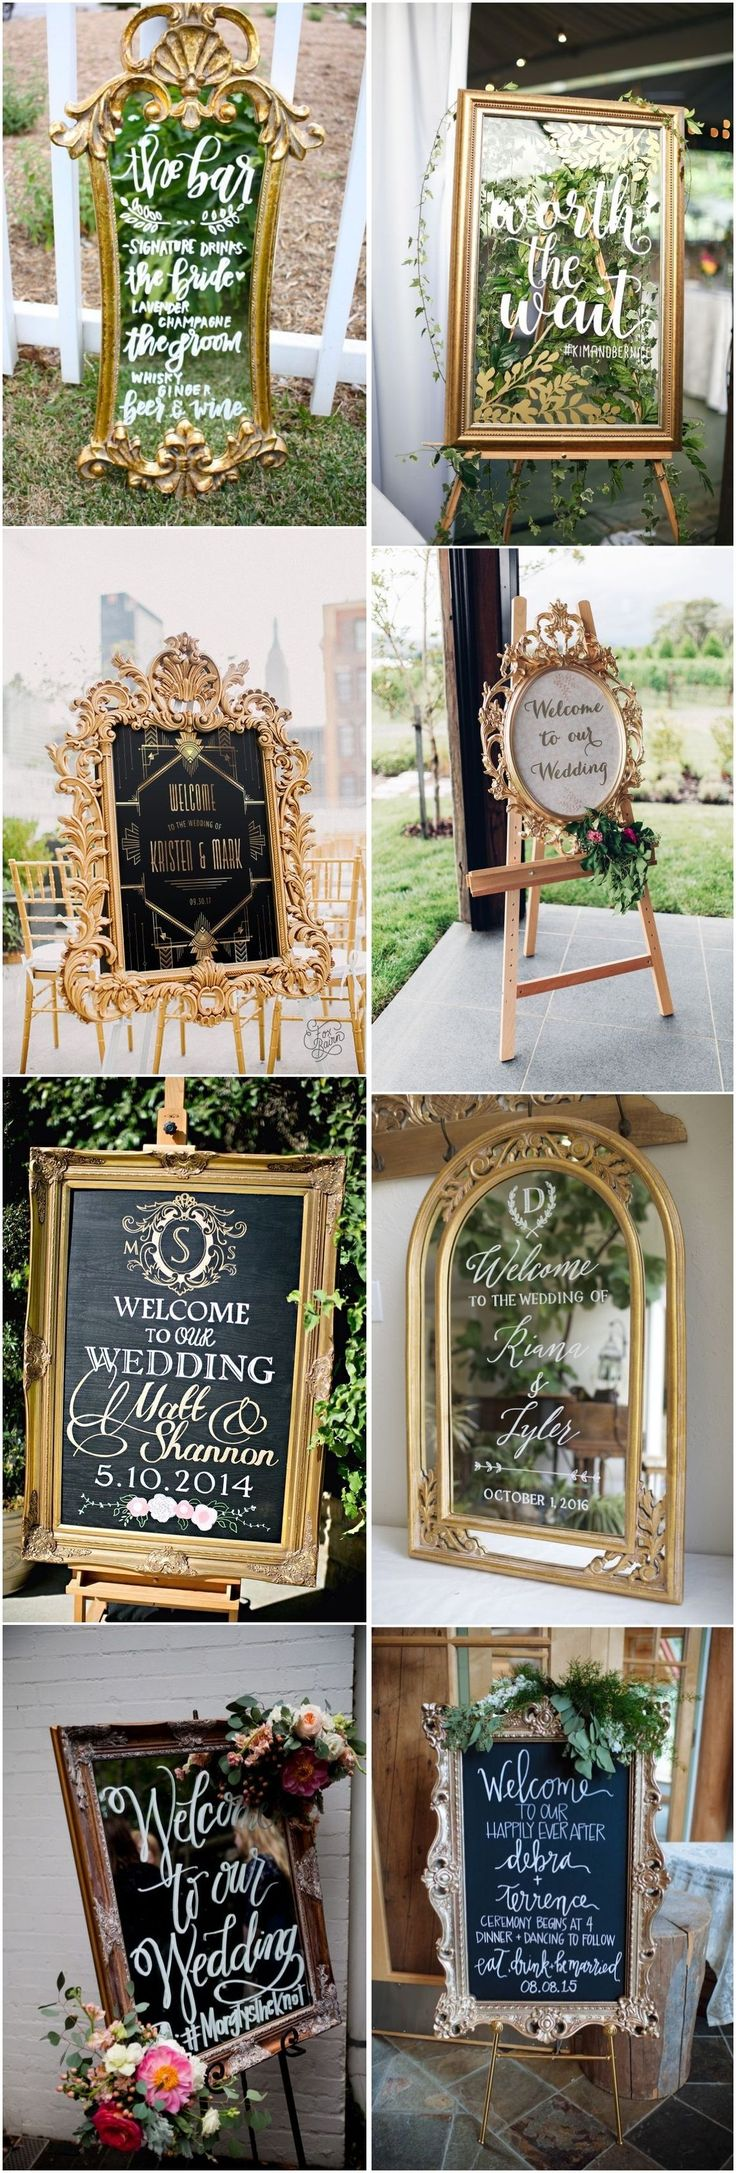 Collecting our board and stand tmr! So grateful to the shop owner who offered to repaint the stand the color i wanted! Thank you! It's beautiful! Maybe i shld upload a pic of it on pinterest! #WeddingIdeasGold